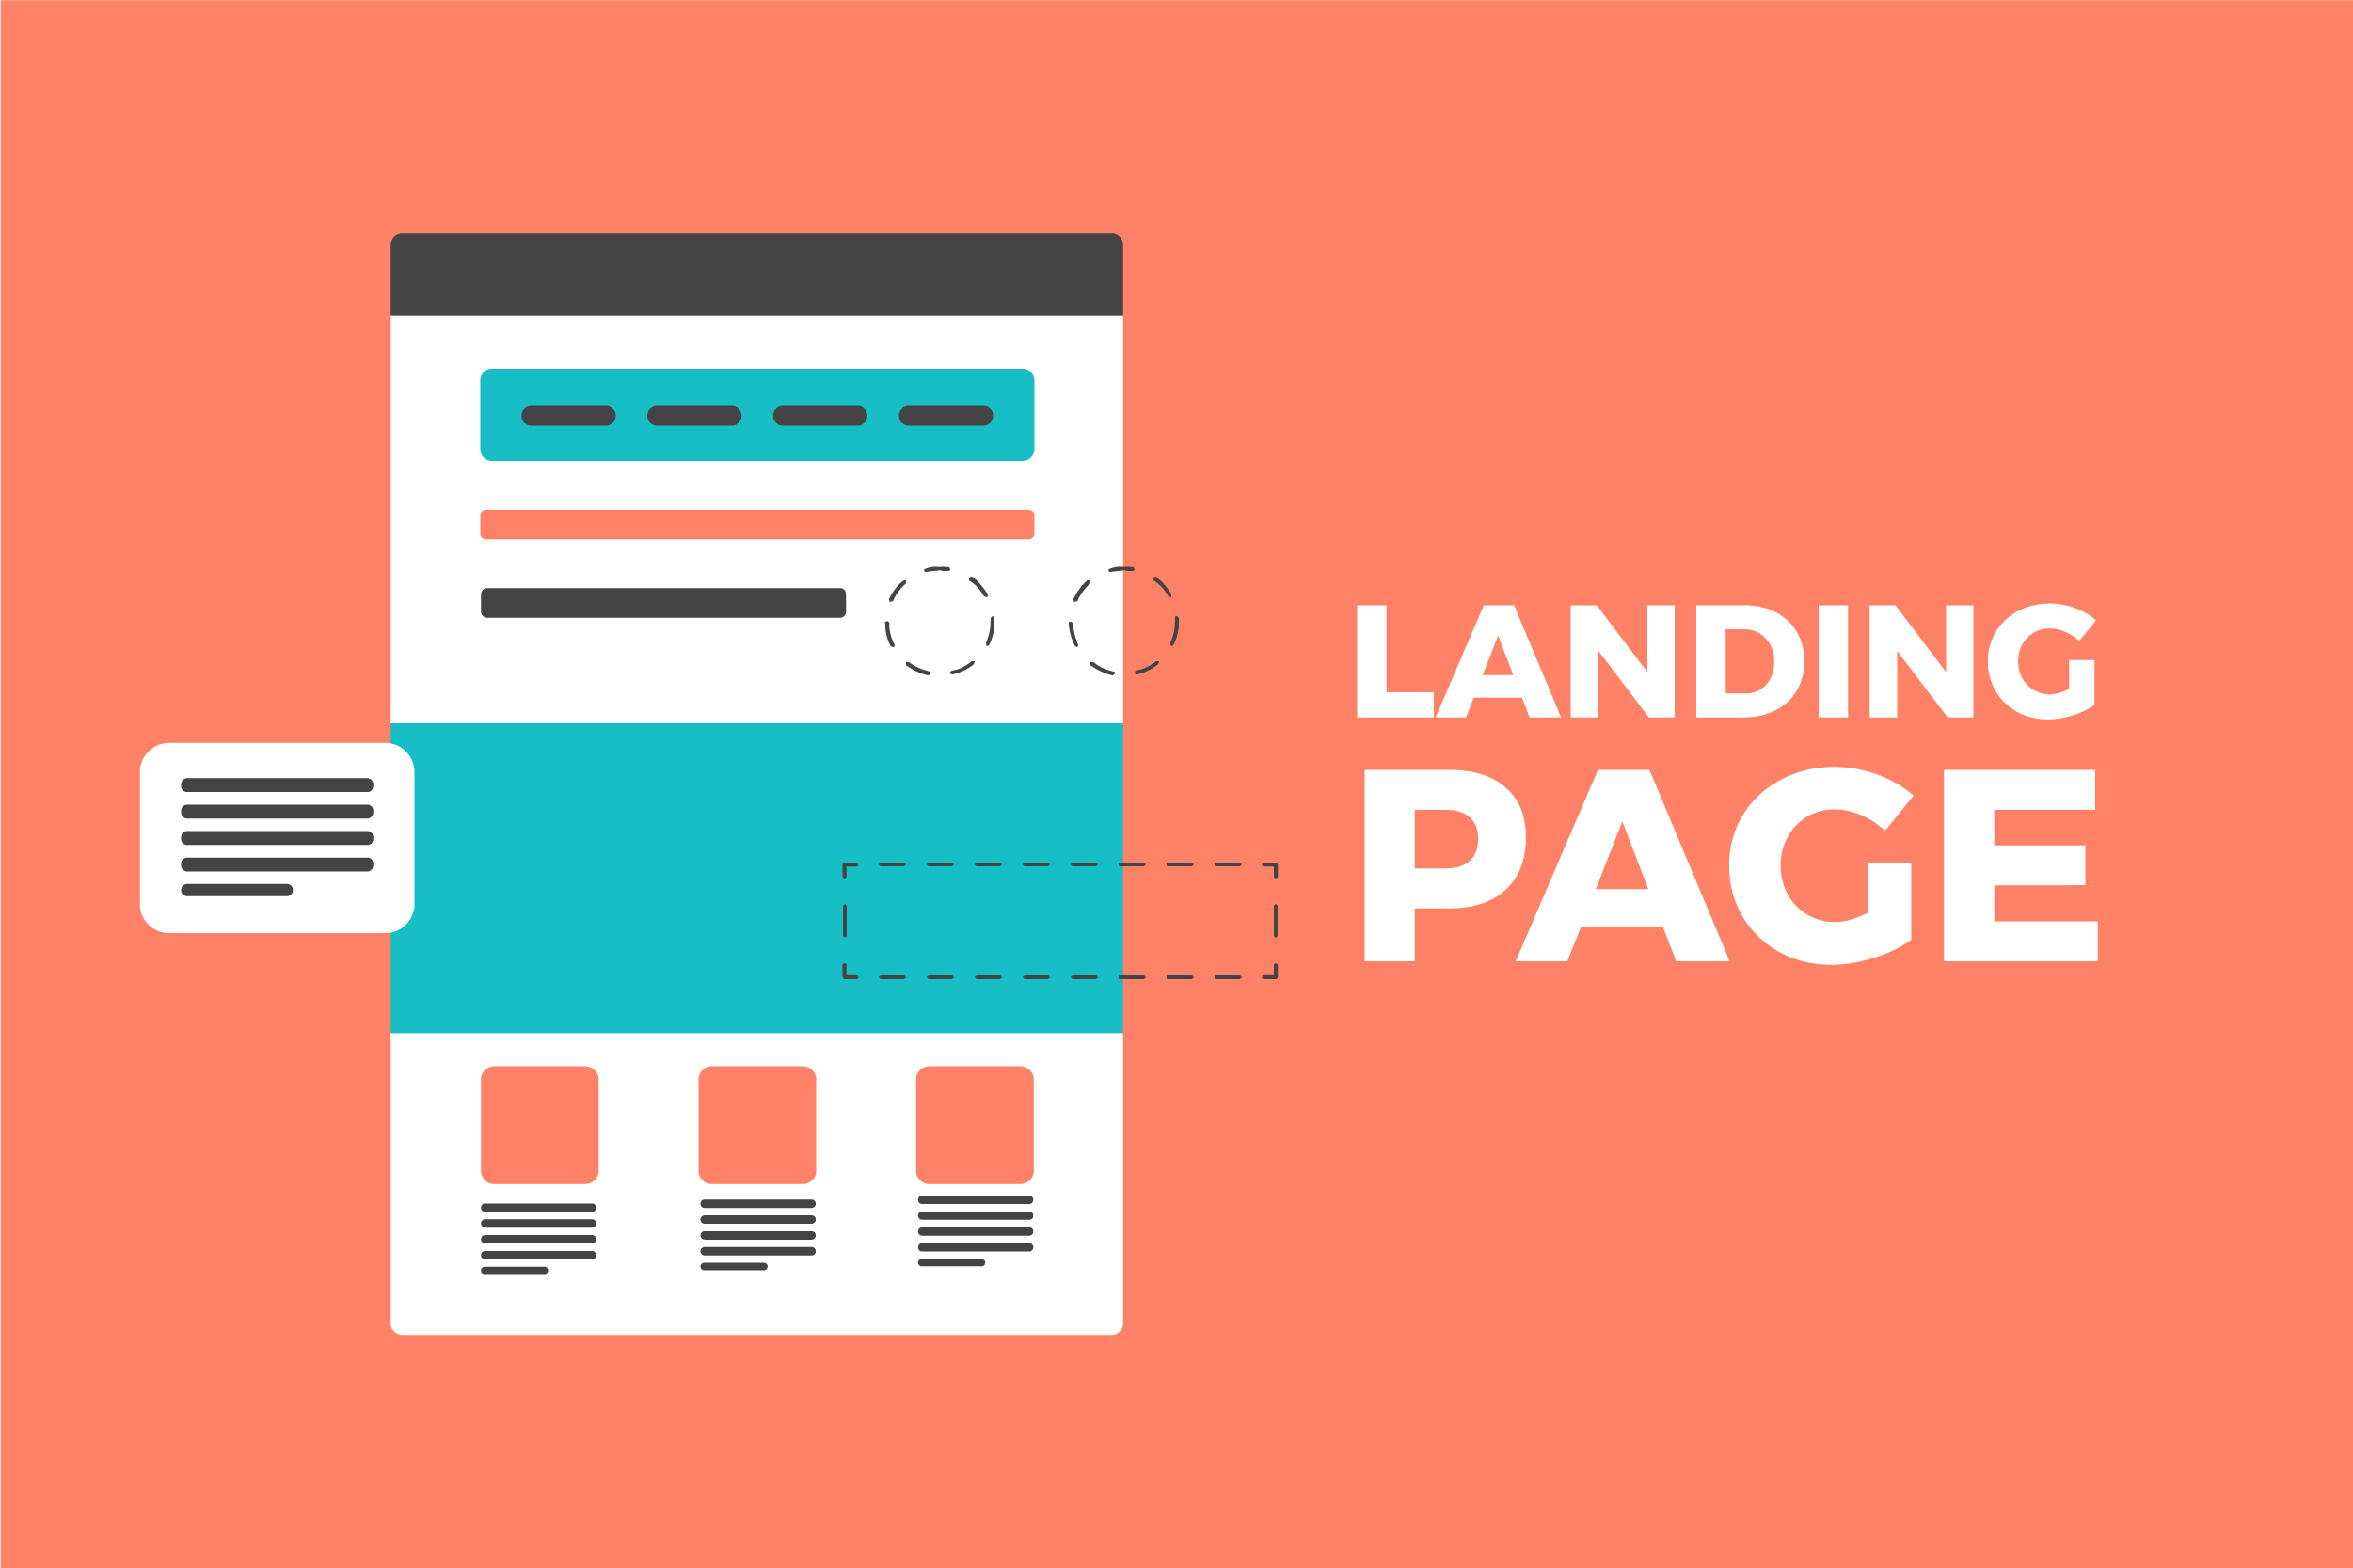 Create Two landingpage for any niches with reasonable layout